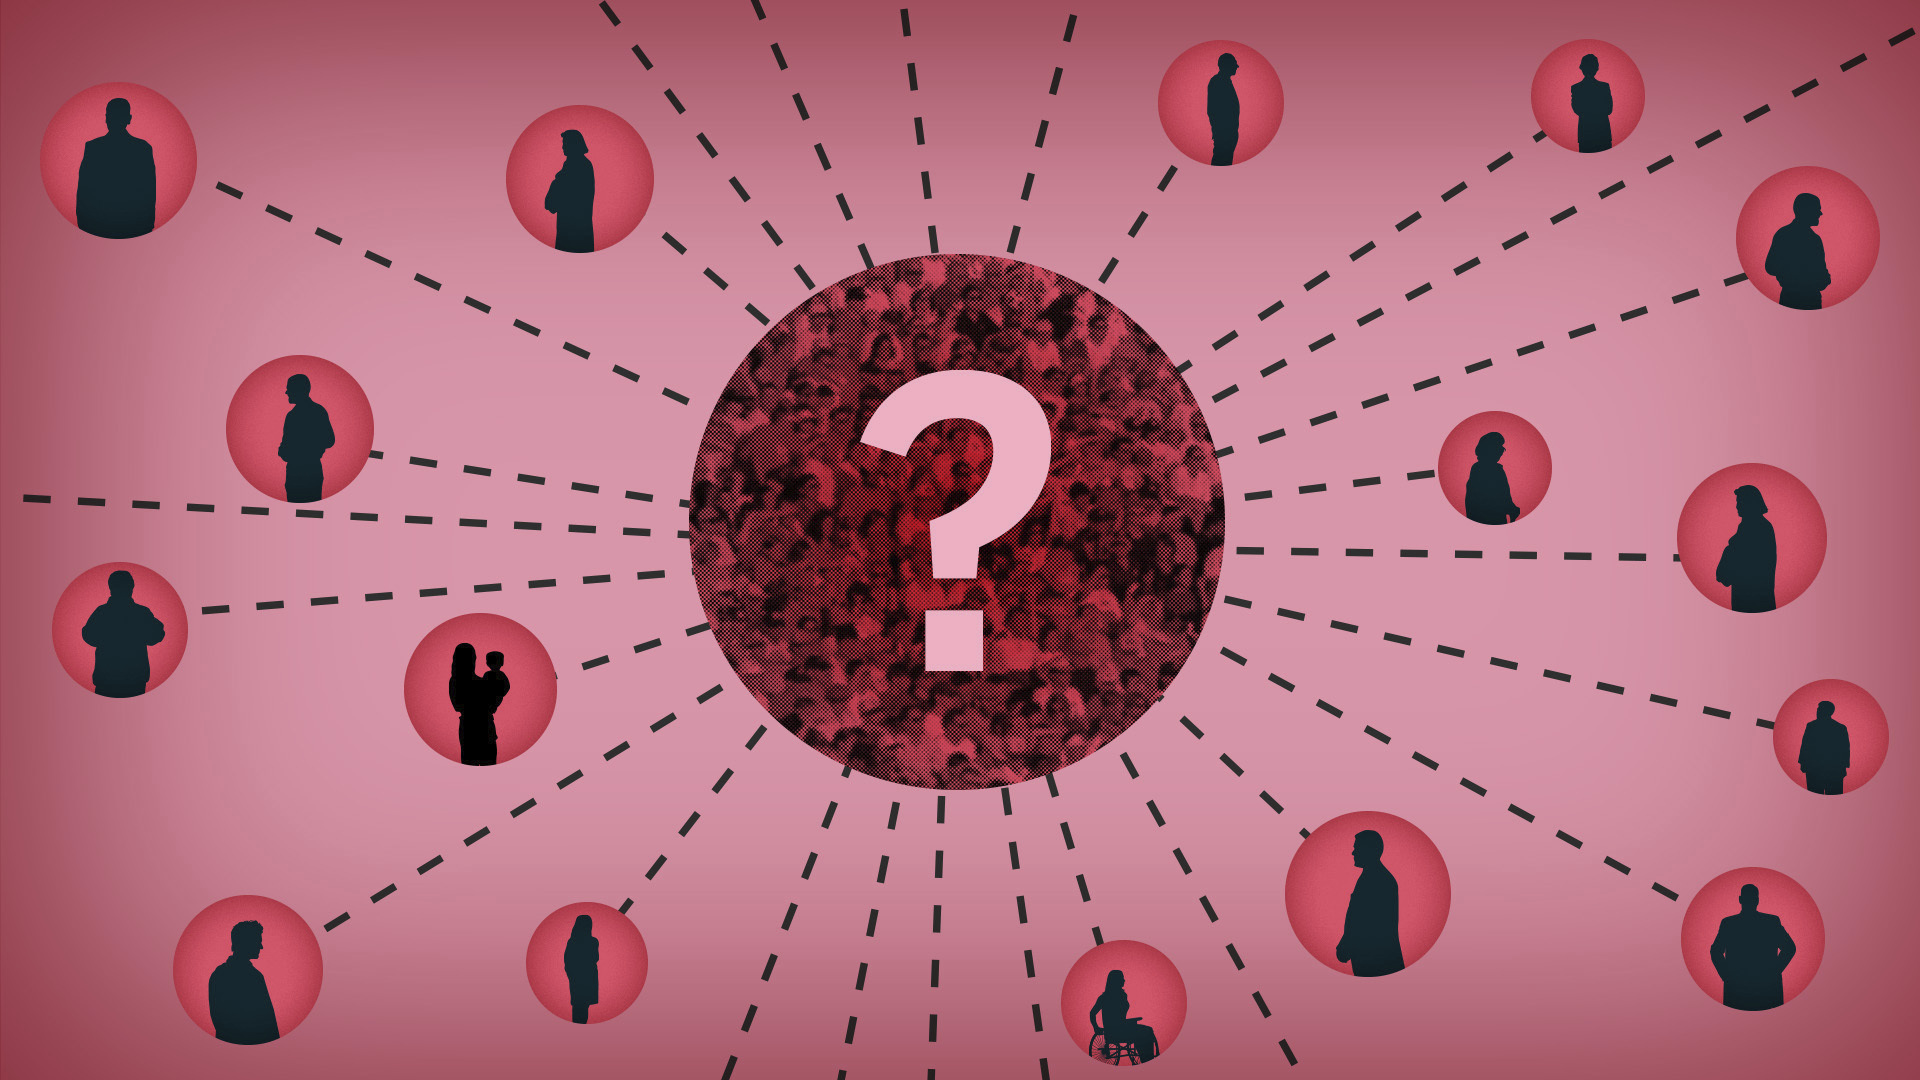 VIRUS OUTBREAK VIRAL QUESTIONS SUPERSPREADER EVENTS